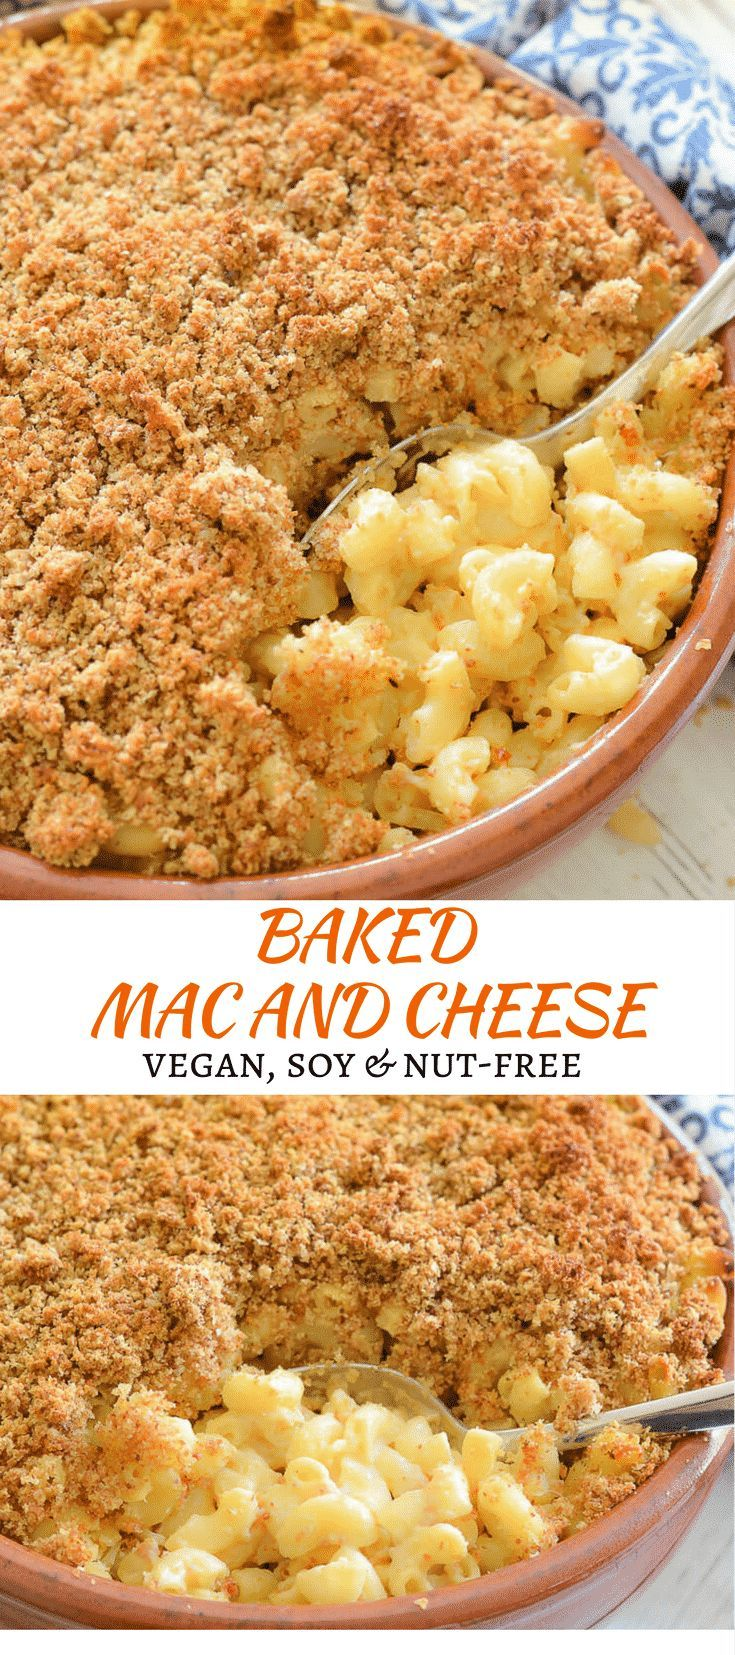 The ultimate Baked Vegan Mac and Cheese. Cheesy, saucy macaroni topped with an irresistible buttery & golden crispy crumb topping. No dairy, no nuts & easily made gluten-free.  Prepare to get saucy!  via @avirtualvegan